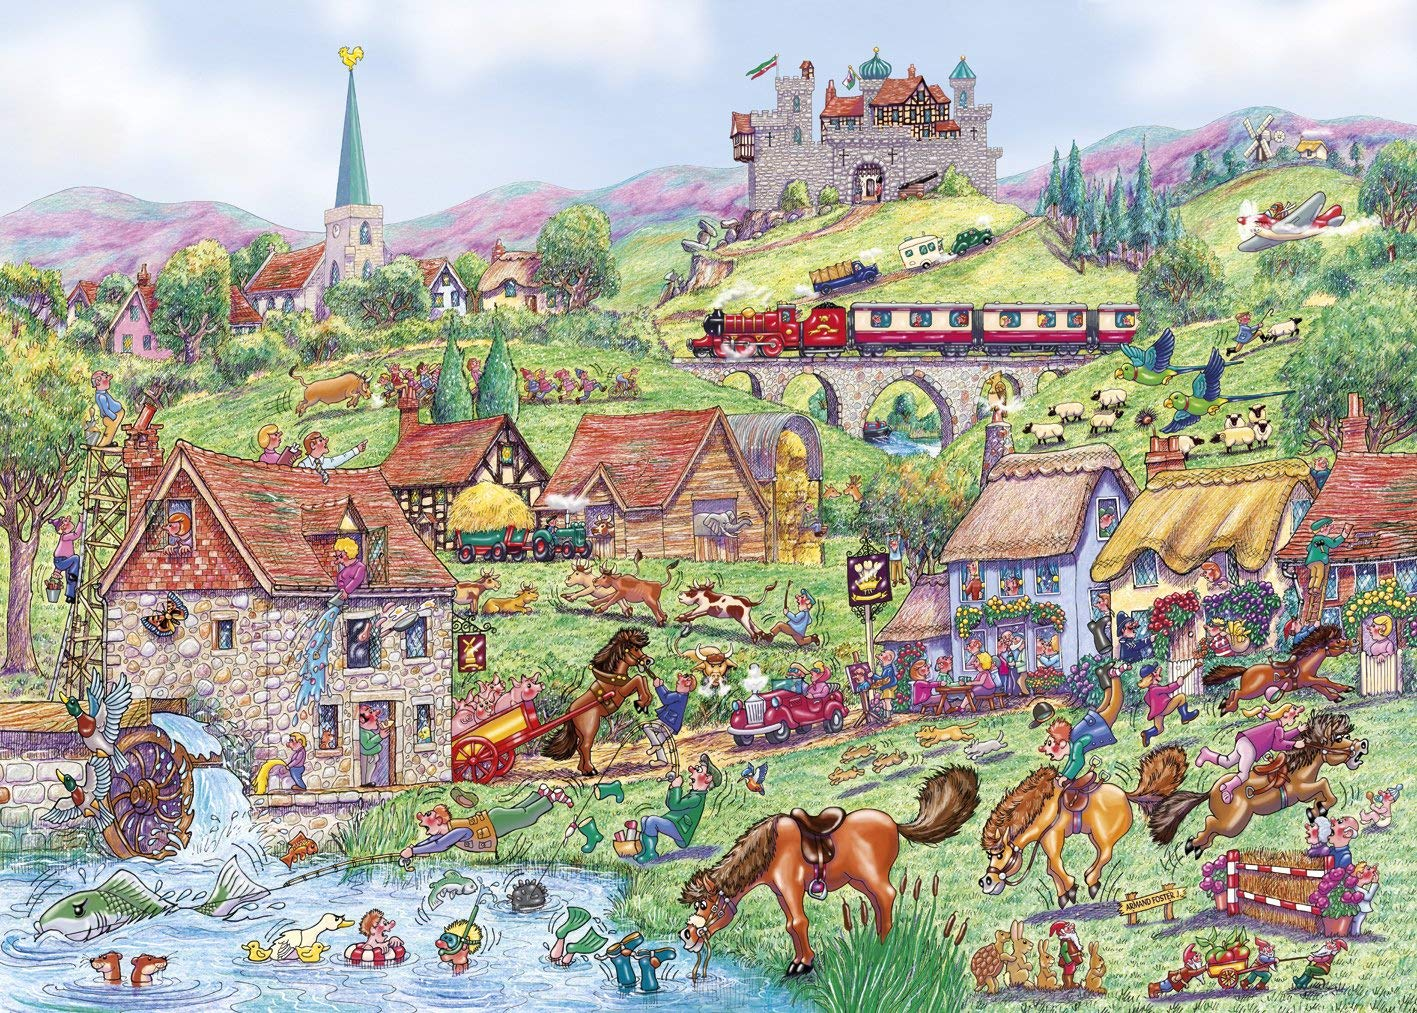 gibsons-horsing-1000-teile-puzzle-gibsons-g6235